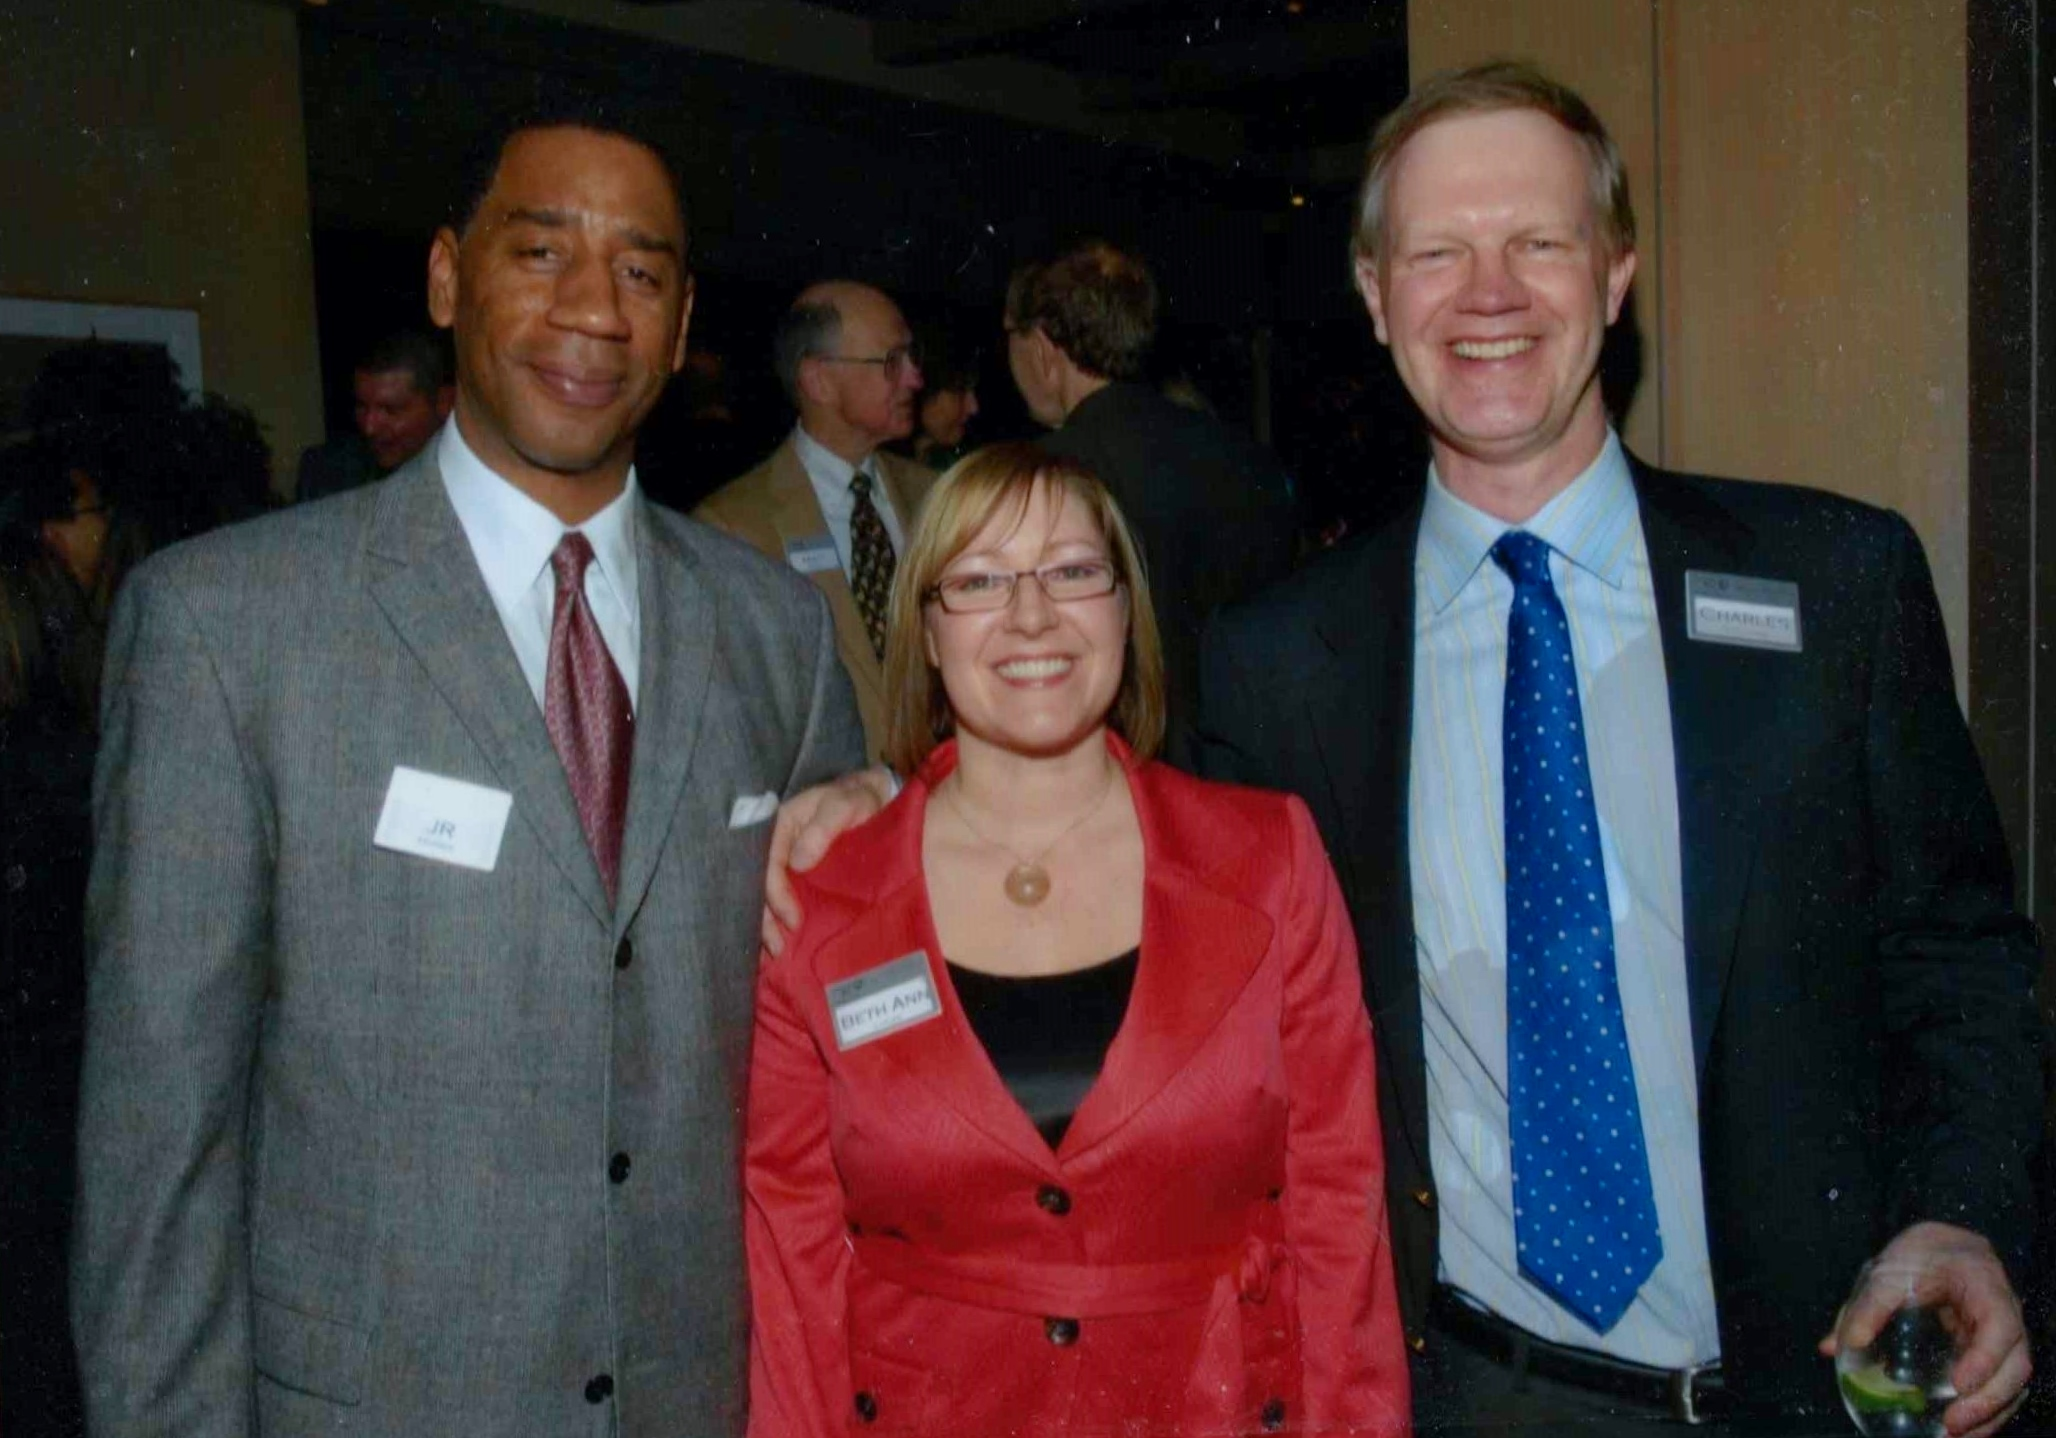 At an Alexis de Tocqueville event for United Way of King County.